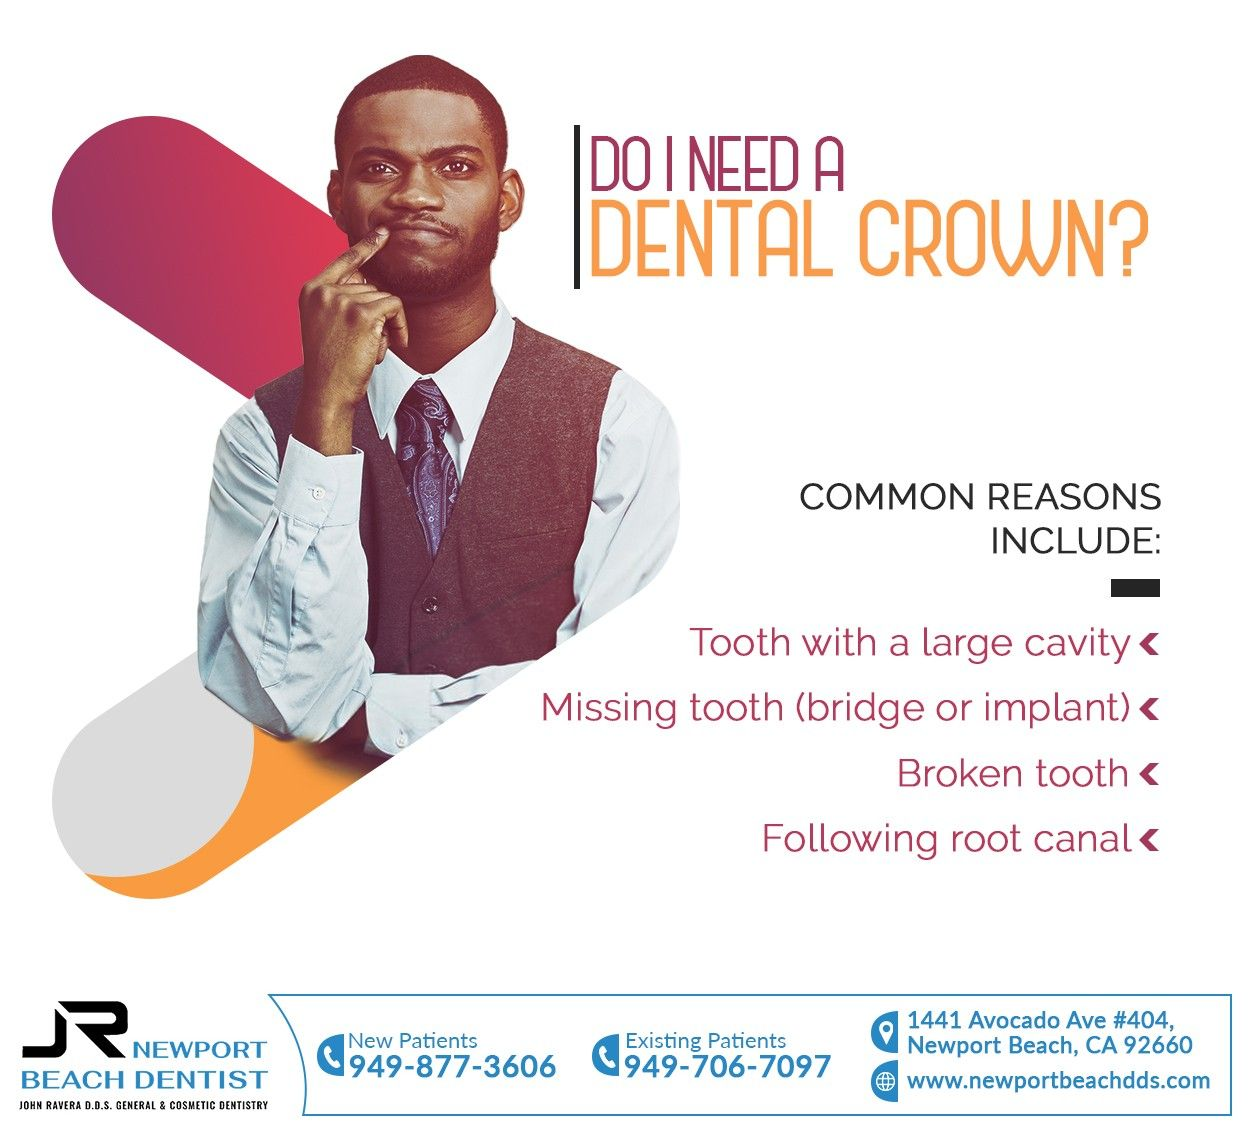 Dental crowns cover and protect teeth that are broken